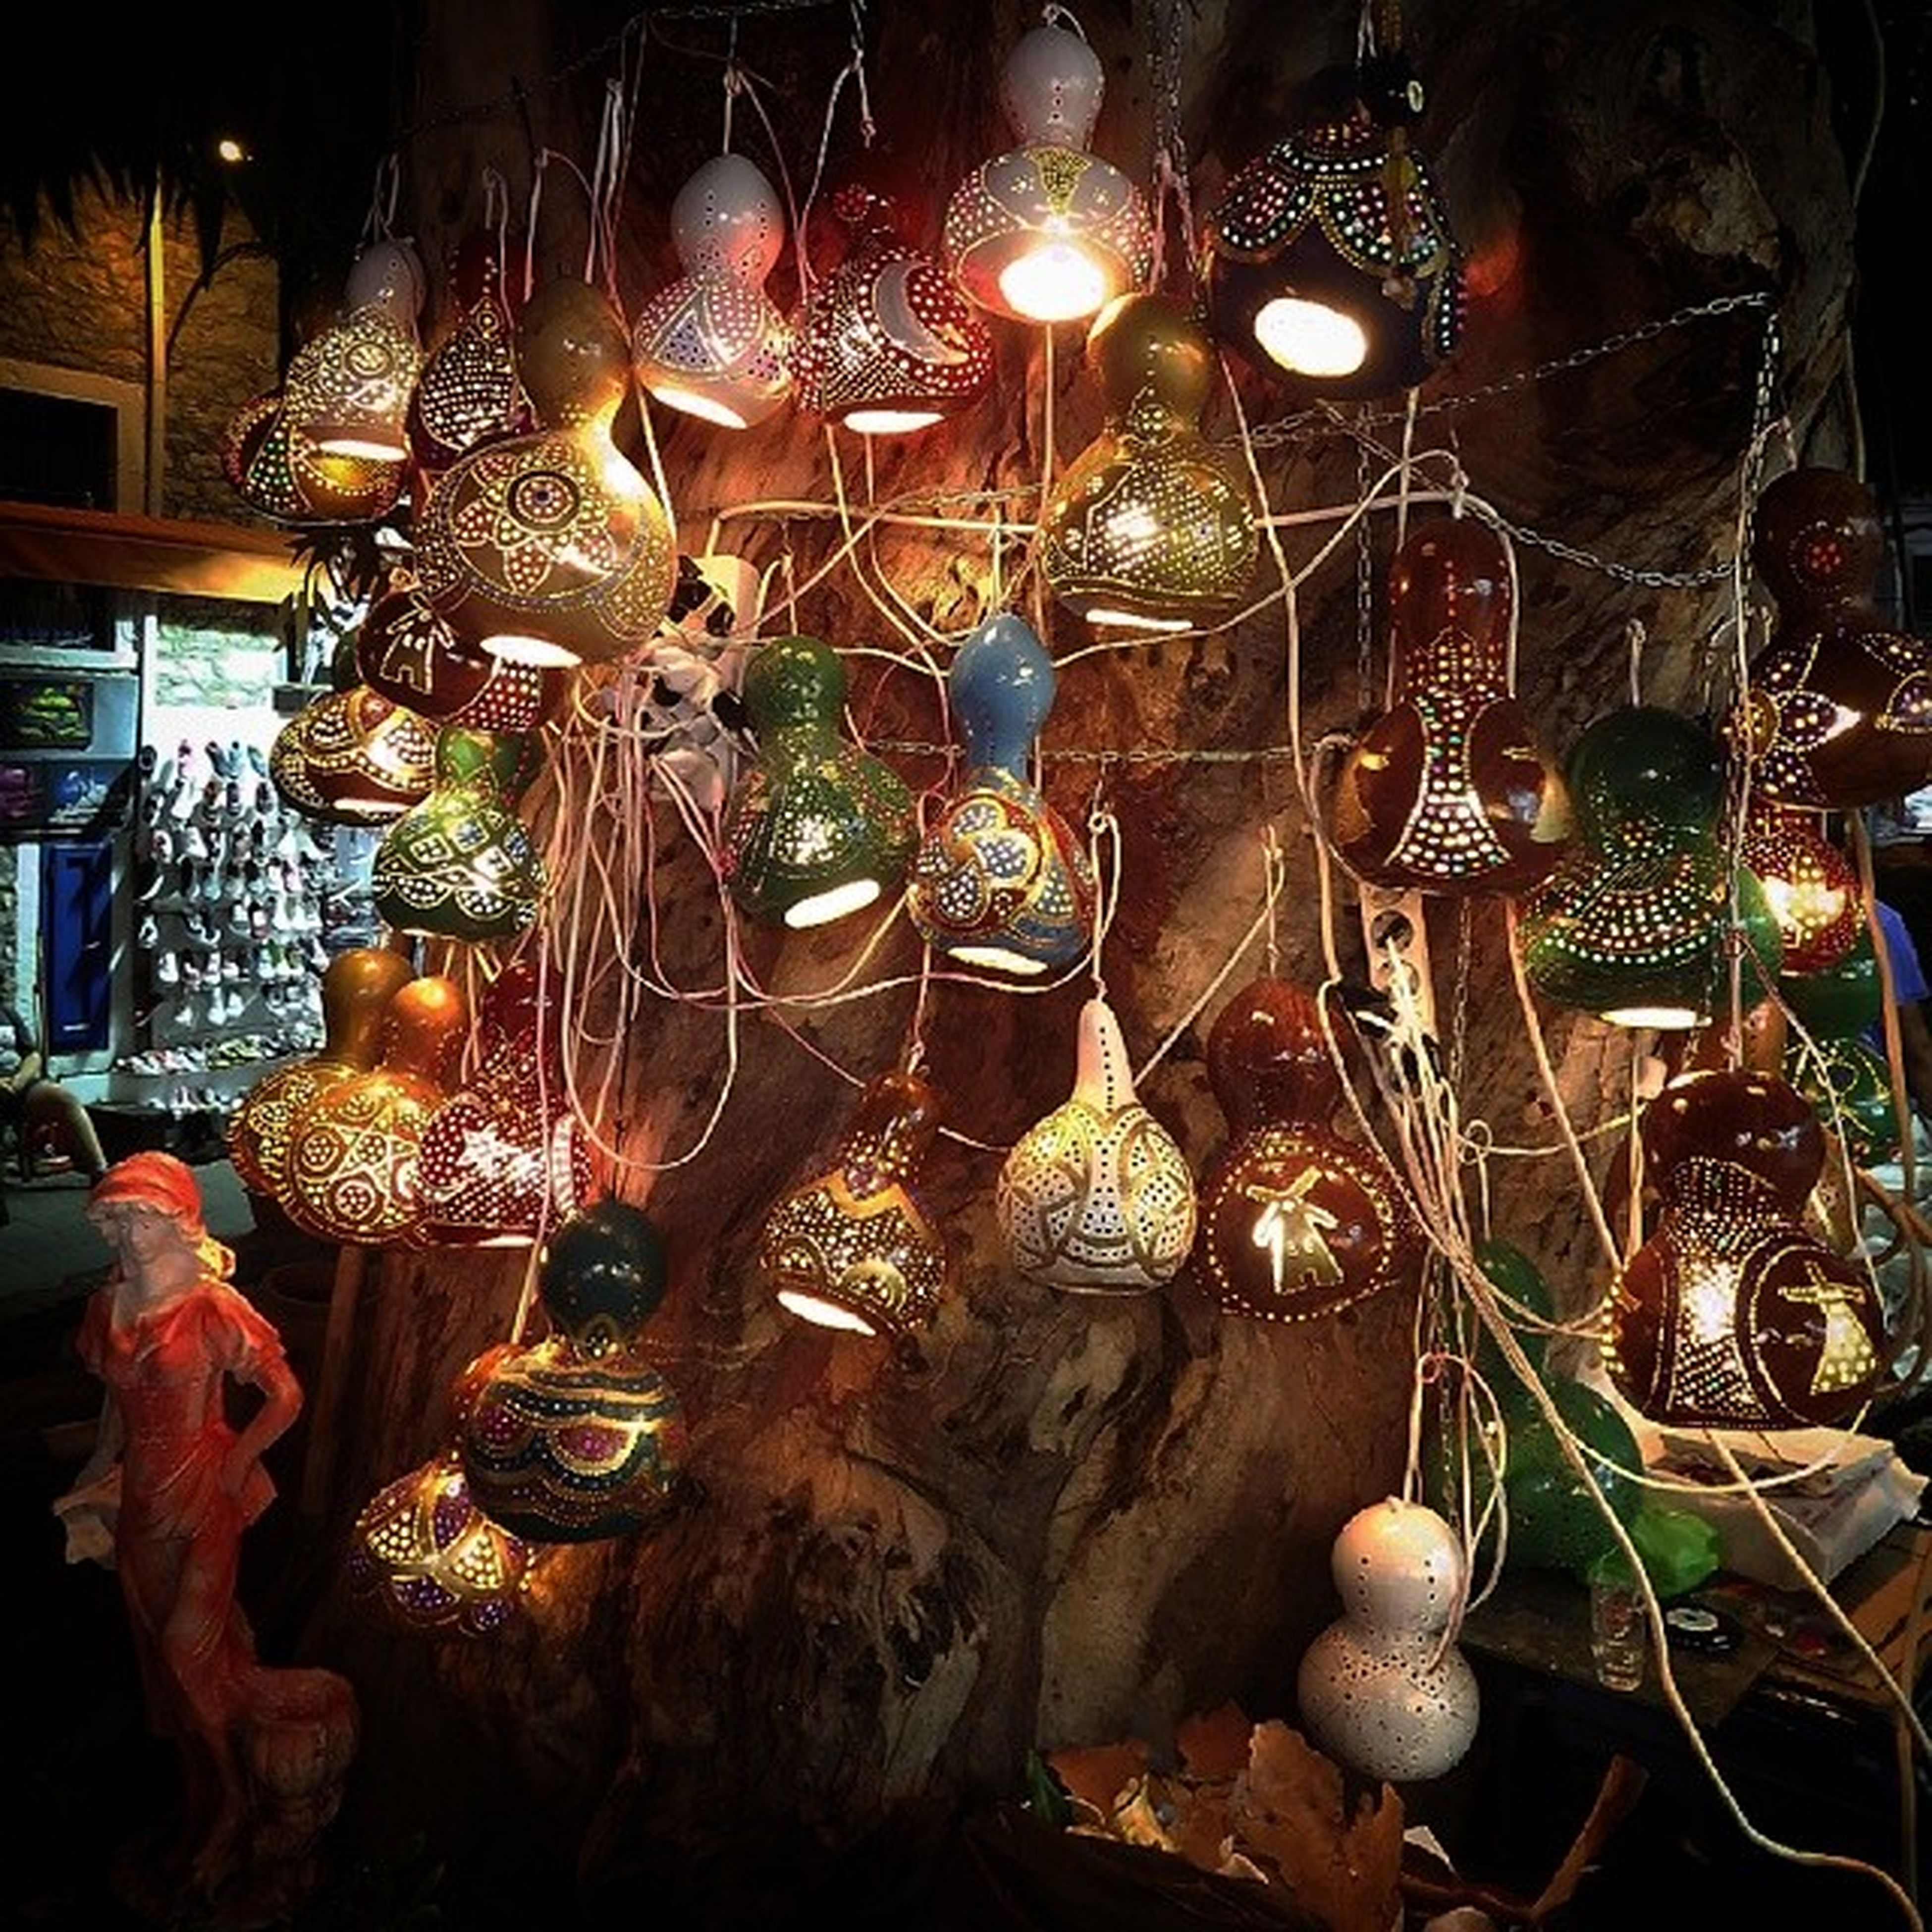 illuminated, lighting equipment, night, indoors, hanging, large group of objects, abundance, decoration, electricity, chair, lit, electric light, glowing, variation, light - natural phenomenon, electric lamp, candle, table, arrangement, retail